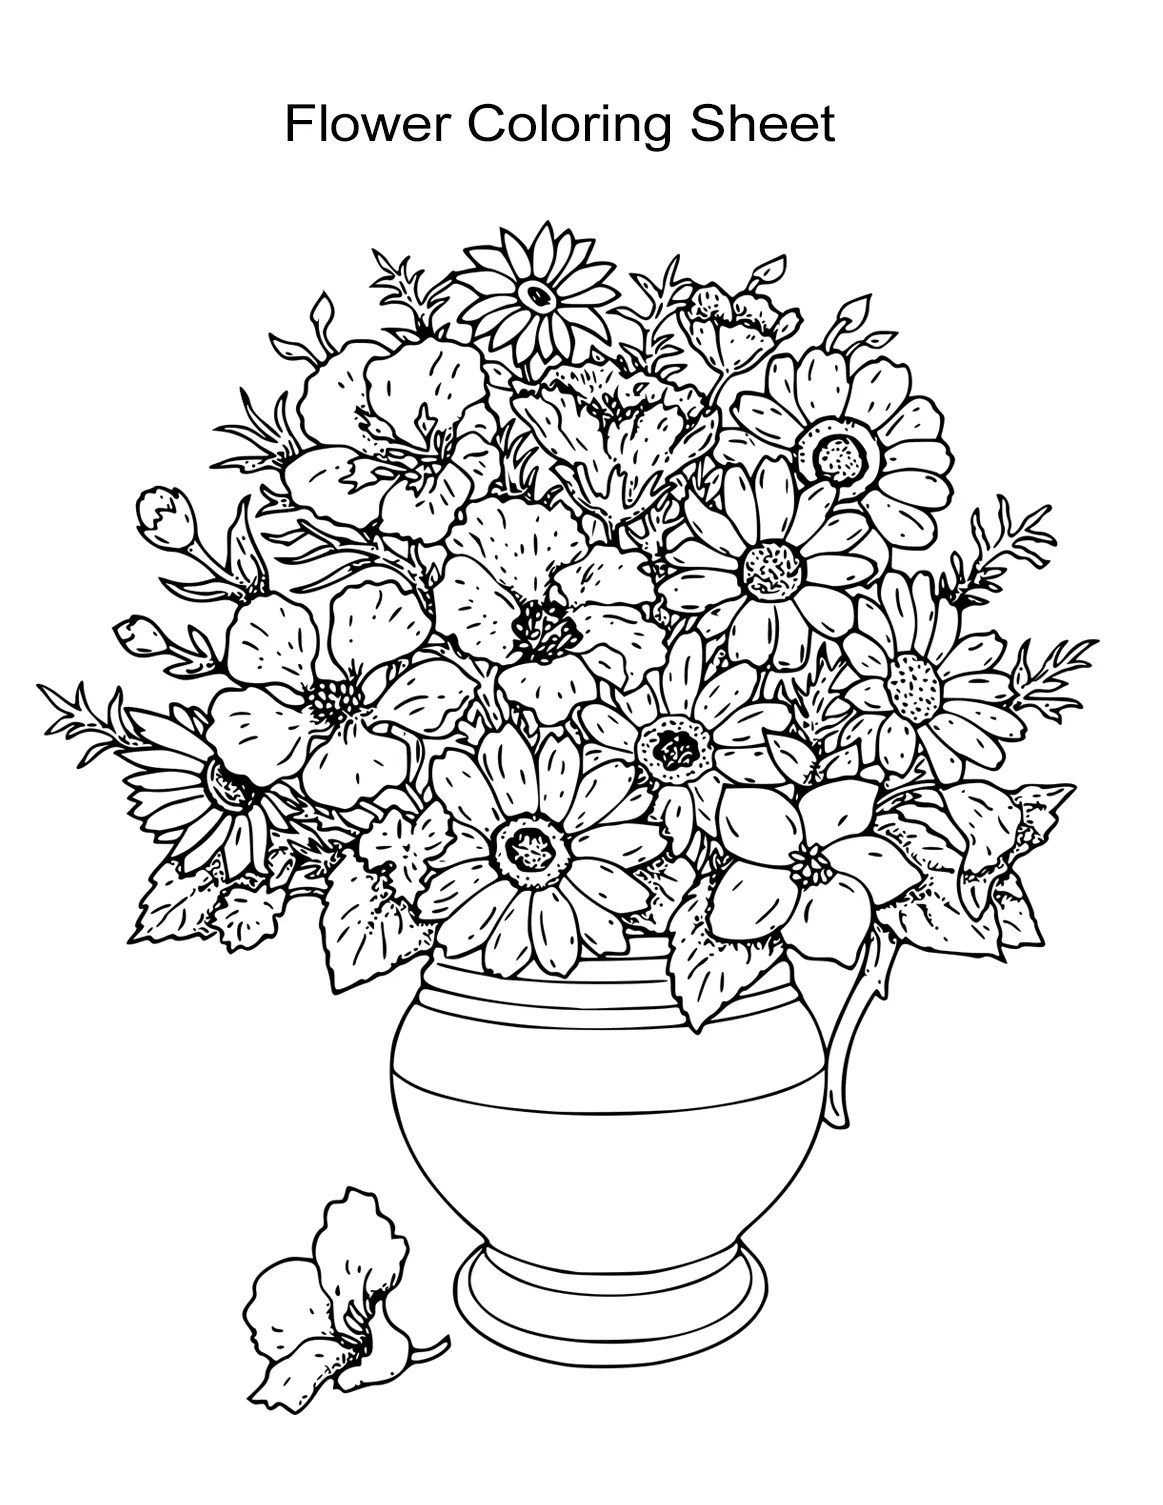 10 Flower Coloring Sheets for Girls and Boys - ALL ESL   coloring sheets for flowers